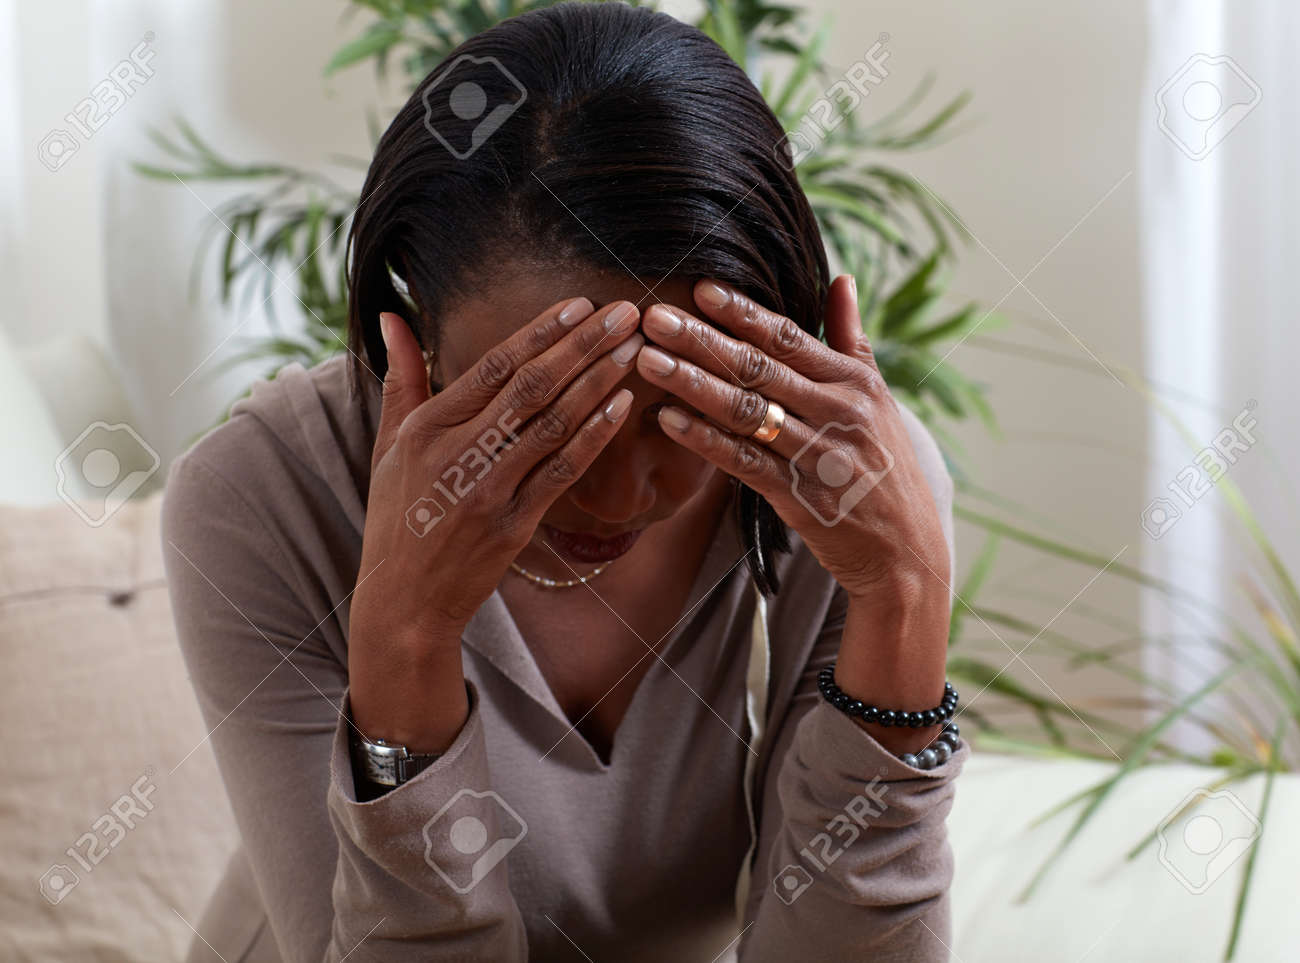 African-american woman suffering headache symptom. Health problem. Standard-Bild - 64468204